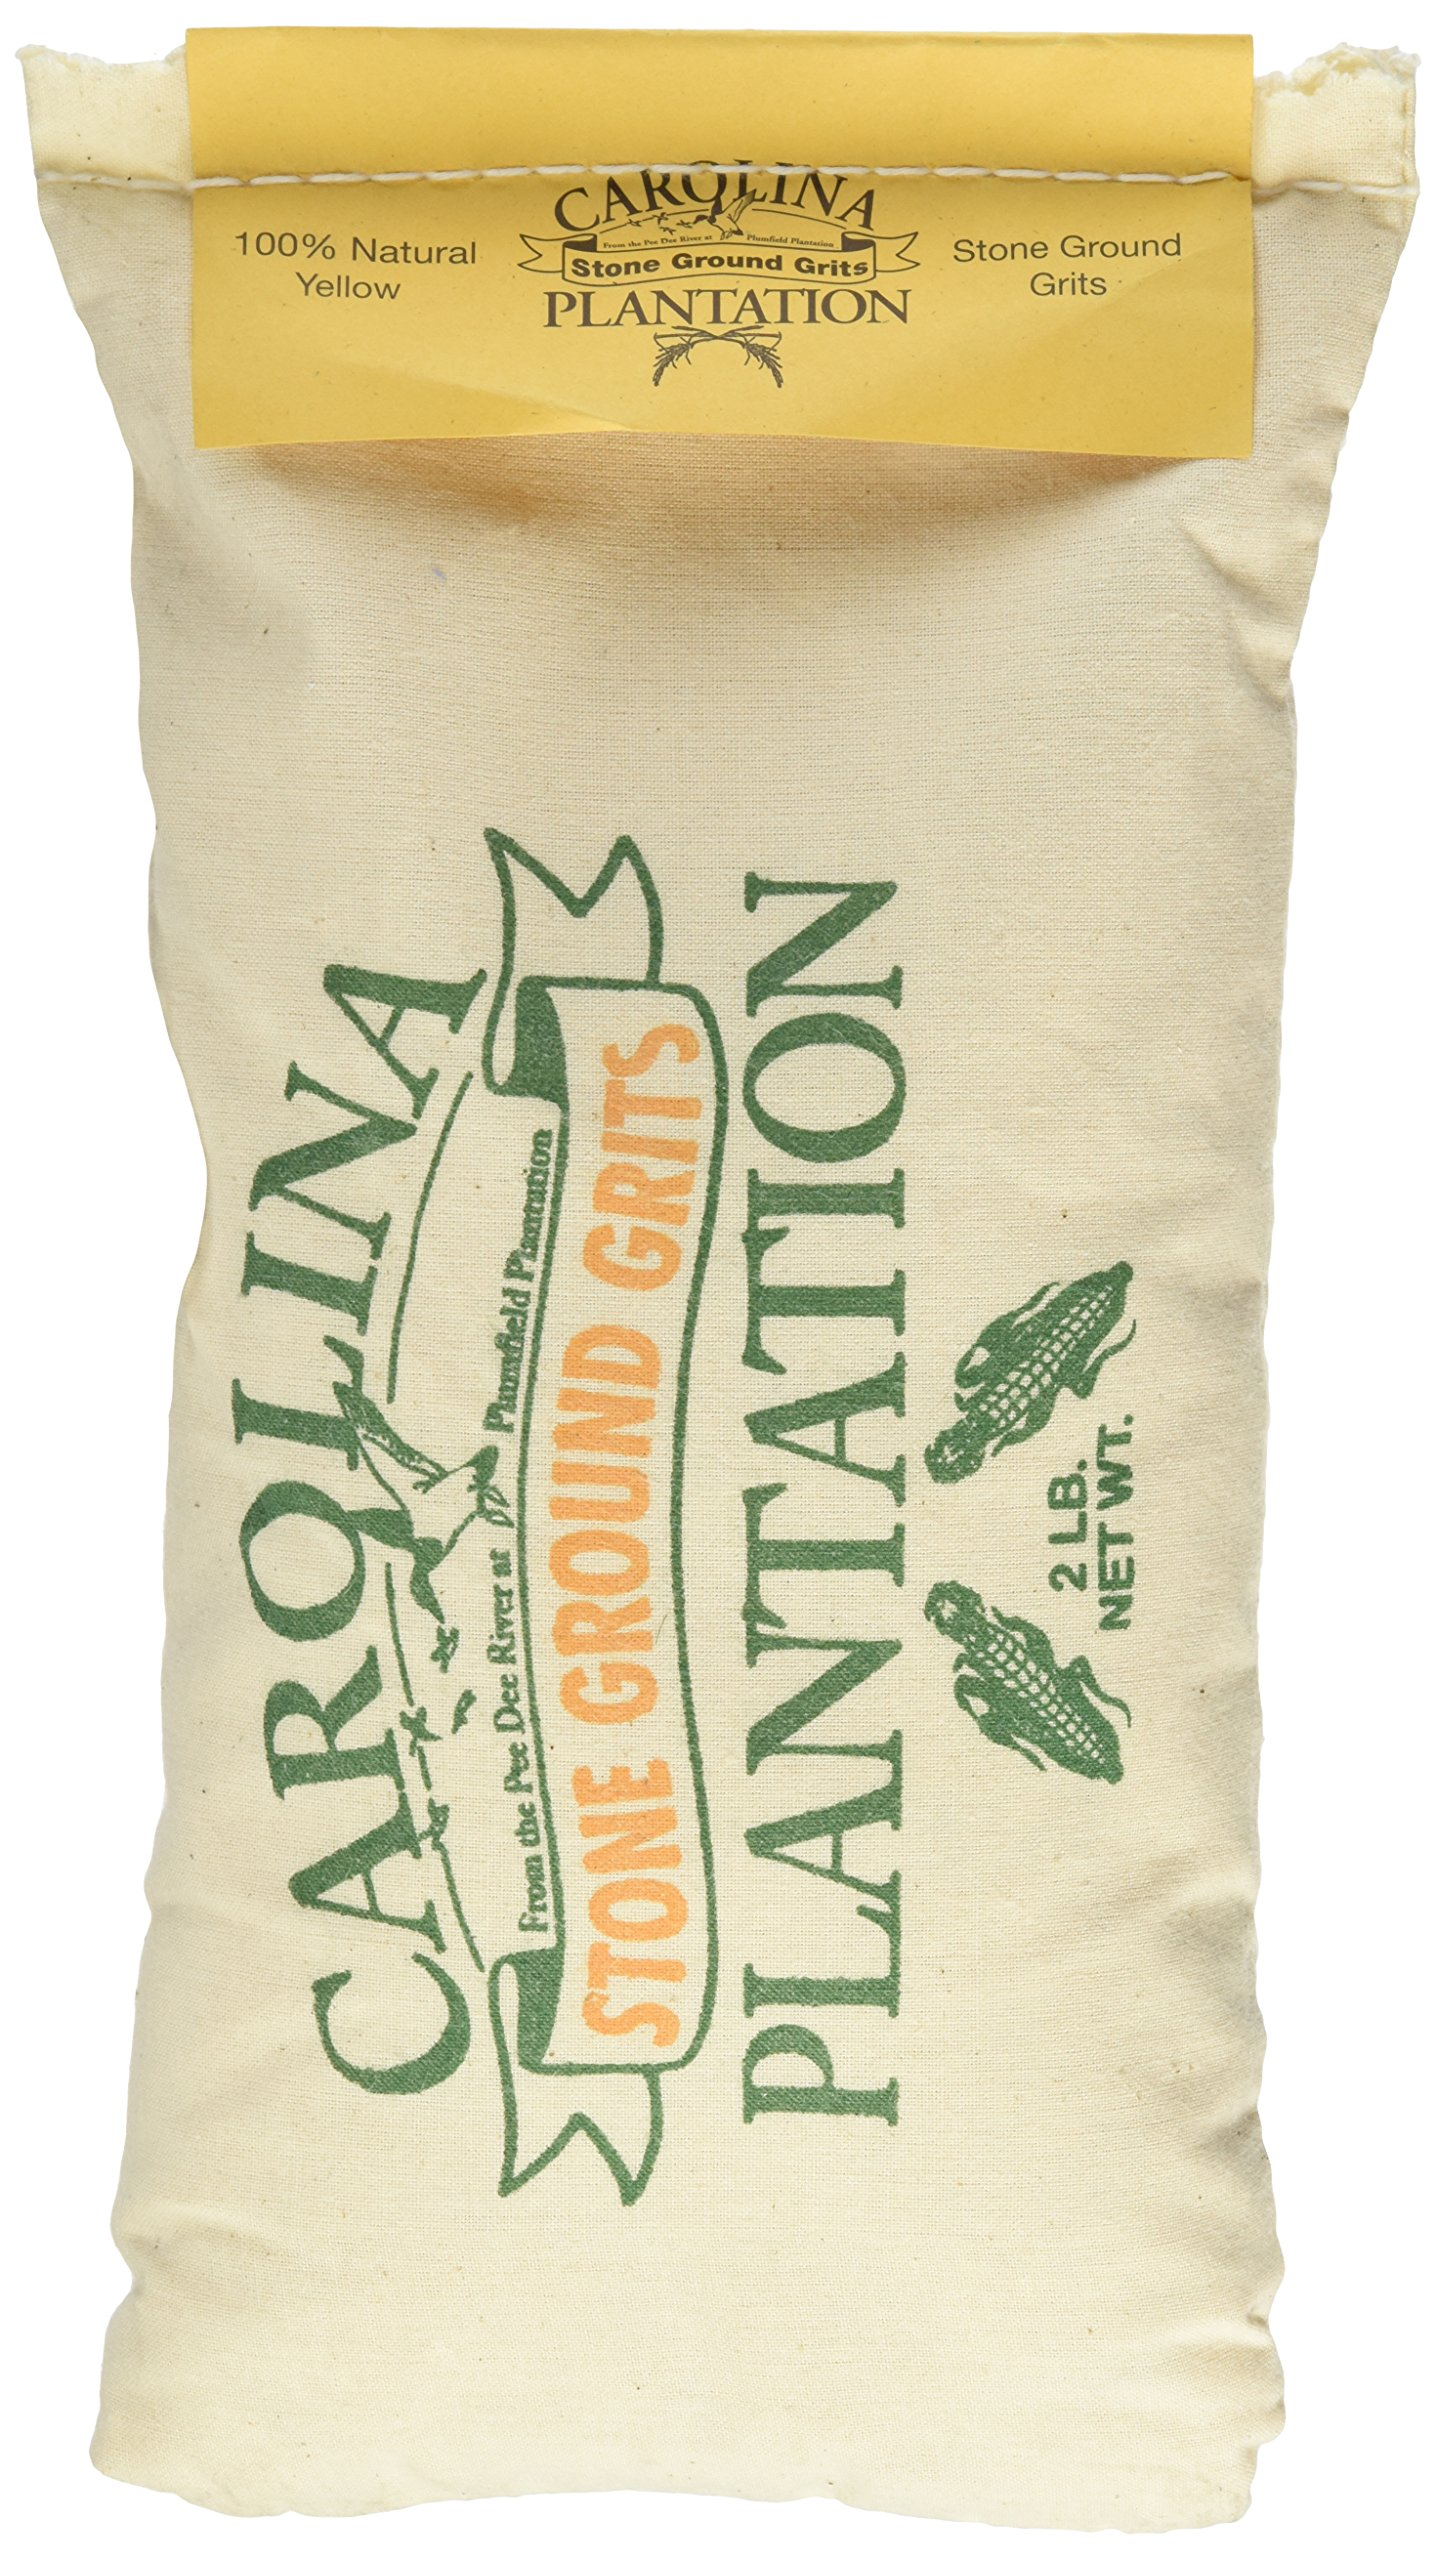 Carolina Plantation Stone Ground Yellow Grits - 2 Lb Bag